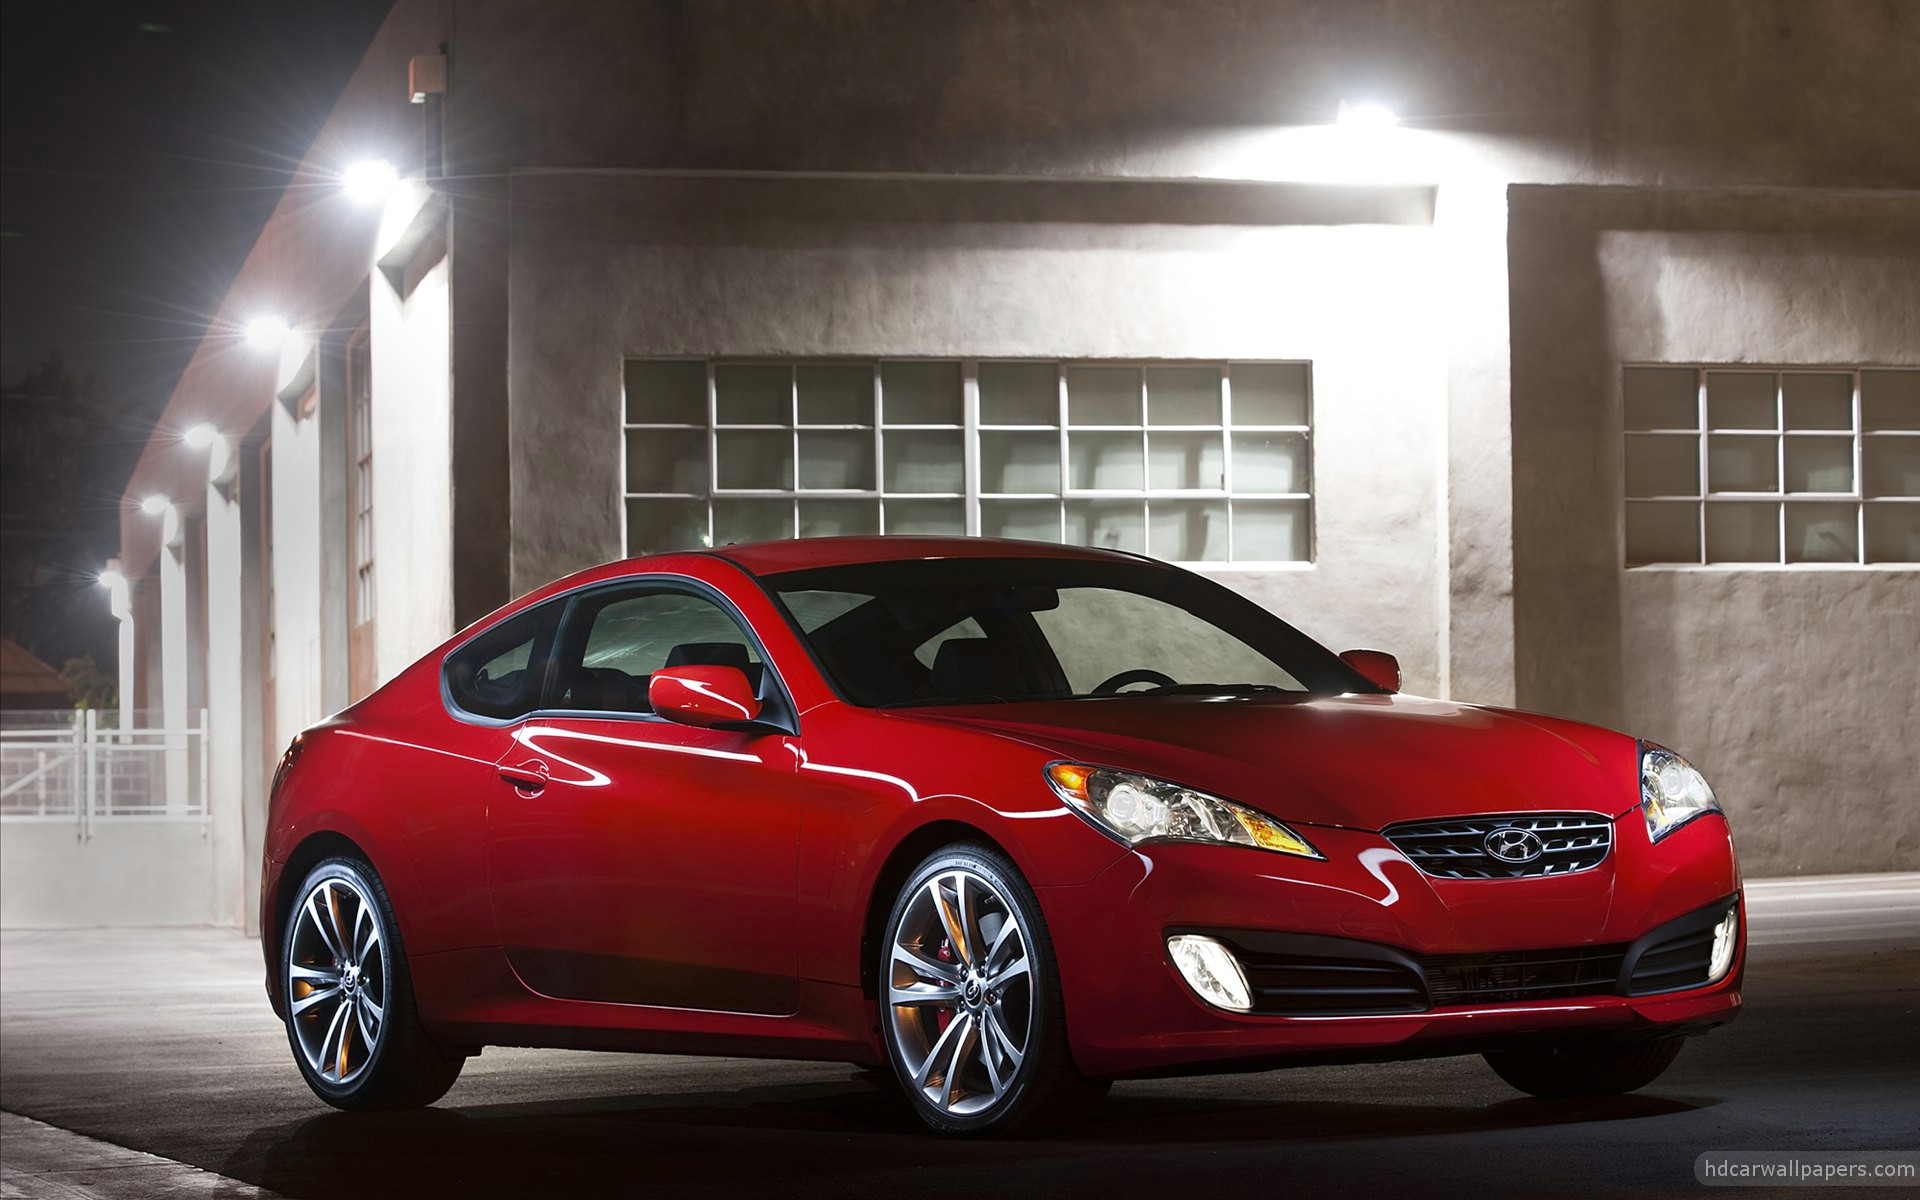 2012 hyundai genesis coupe wallpaper hd car wallpapers id 2136. Black Bedroom Furniture Sets. Home Design Ideas